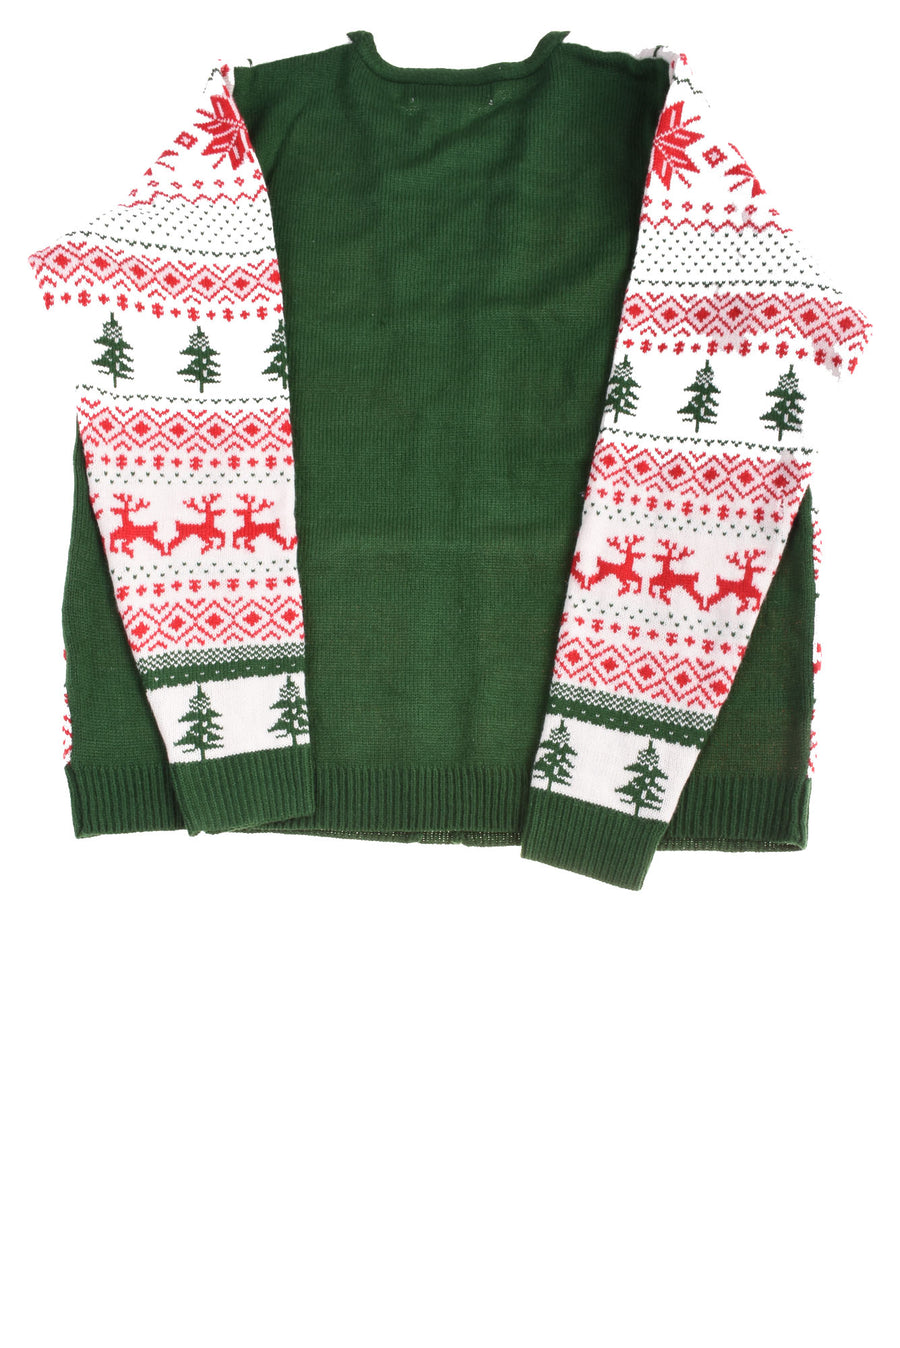 USED Jolly Sweaters Men's Sweater X-Large Red, White & Green